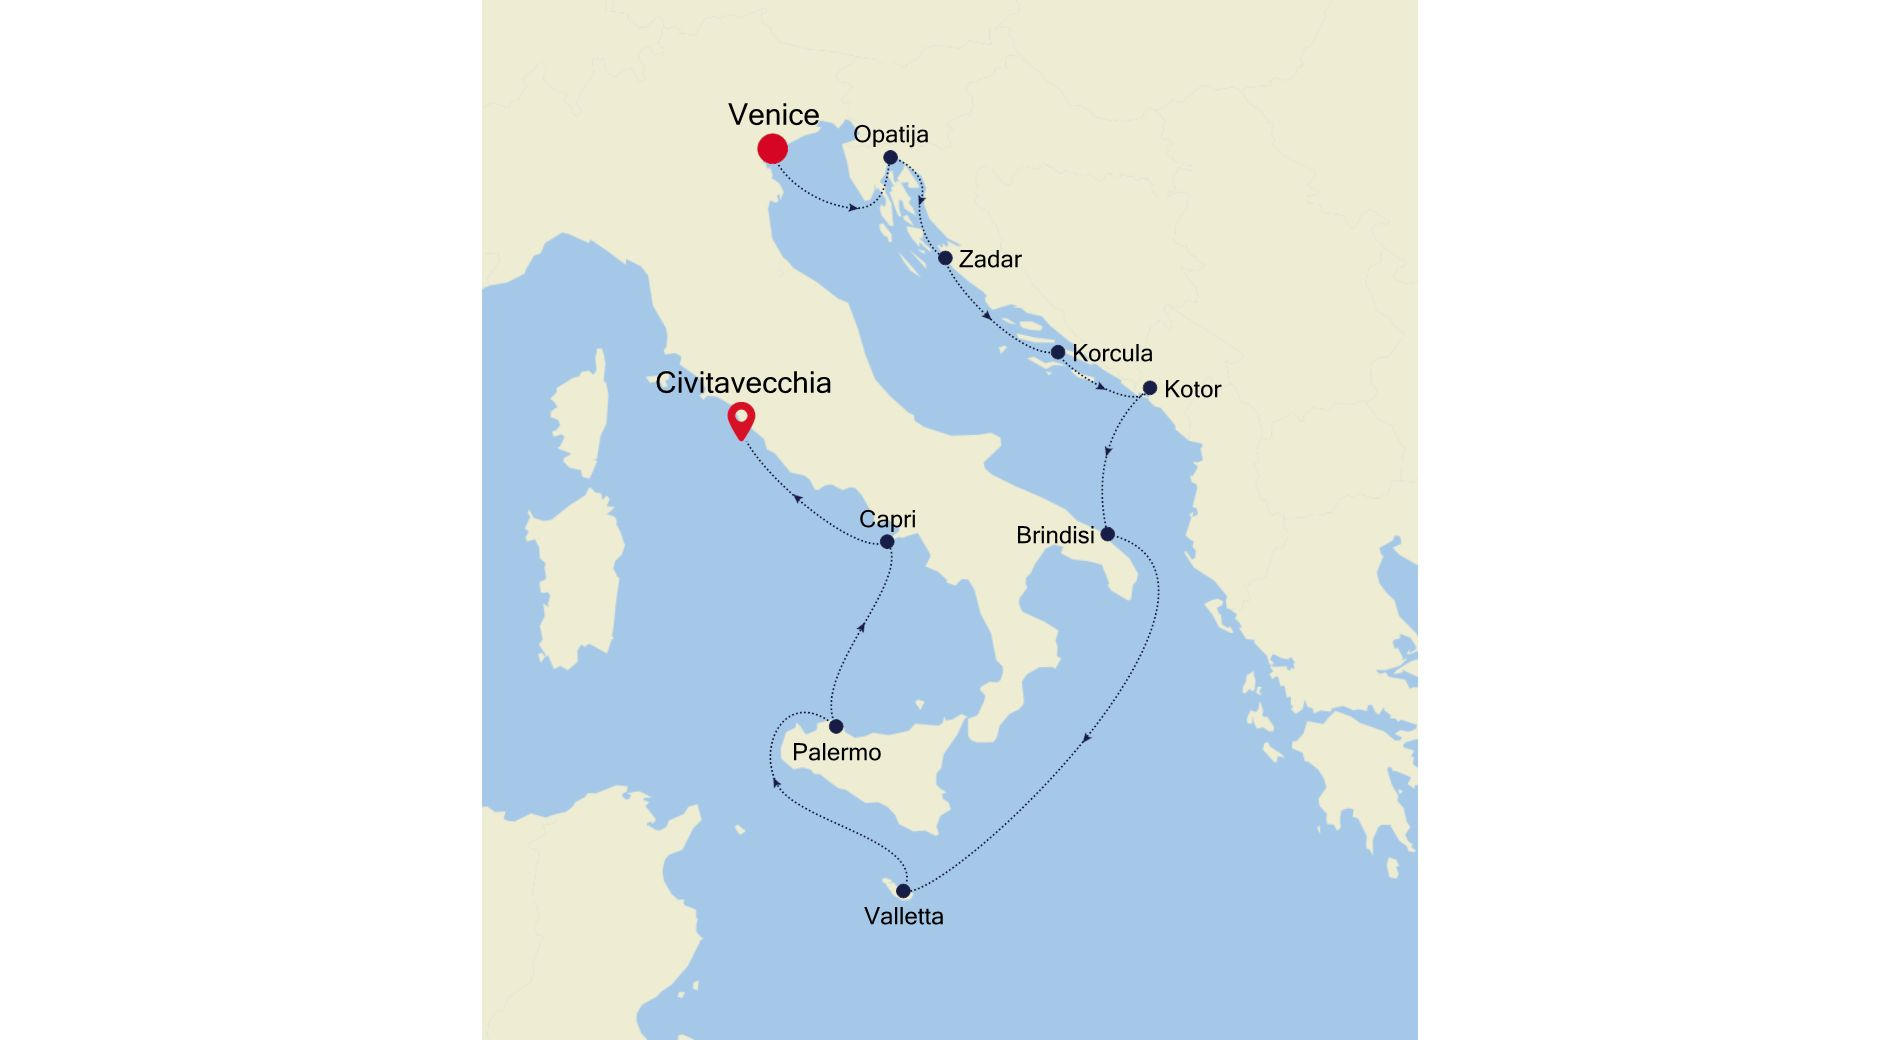 3927 - Venice to Civitavecchia